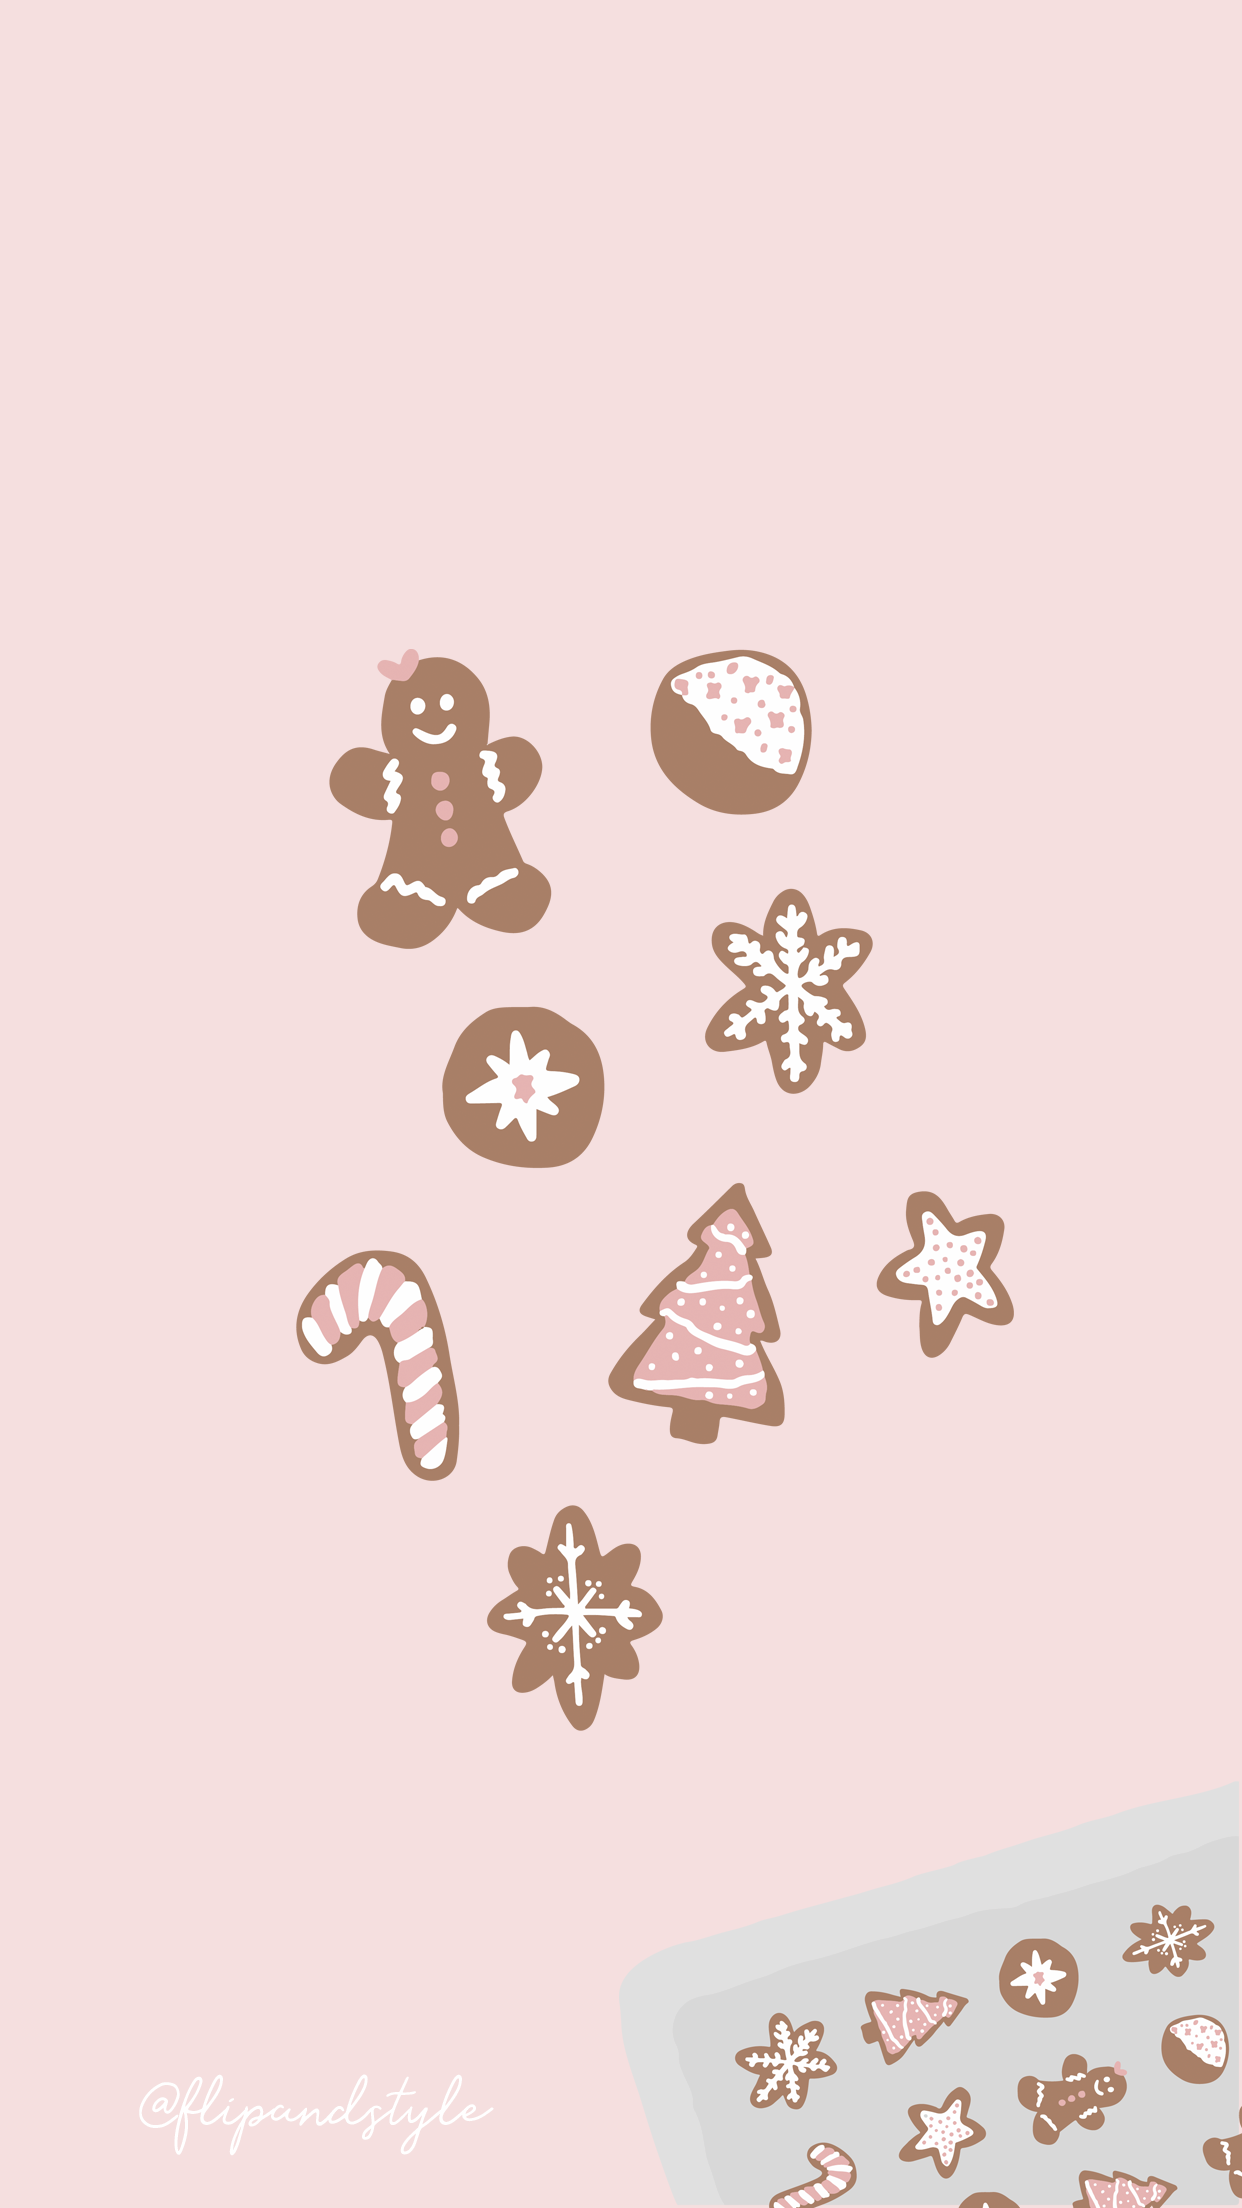 Free Wallpapers Backgrounds Christmas Festive By Flip And Style Cute Christmas Wallpaper Wallpaper Iphone Christmas Christmas Phone Wallpaper